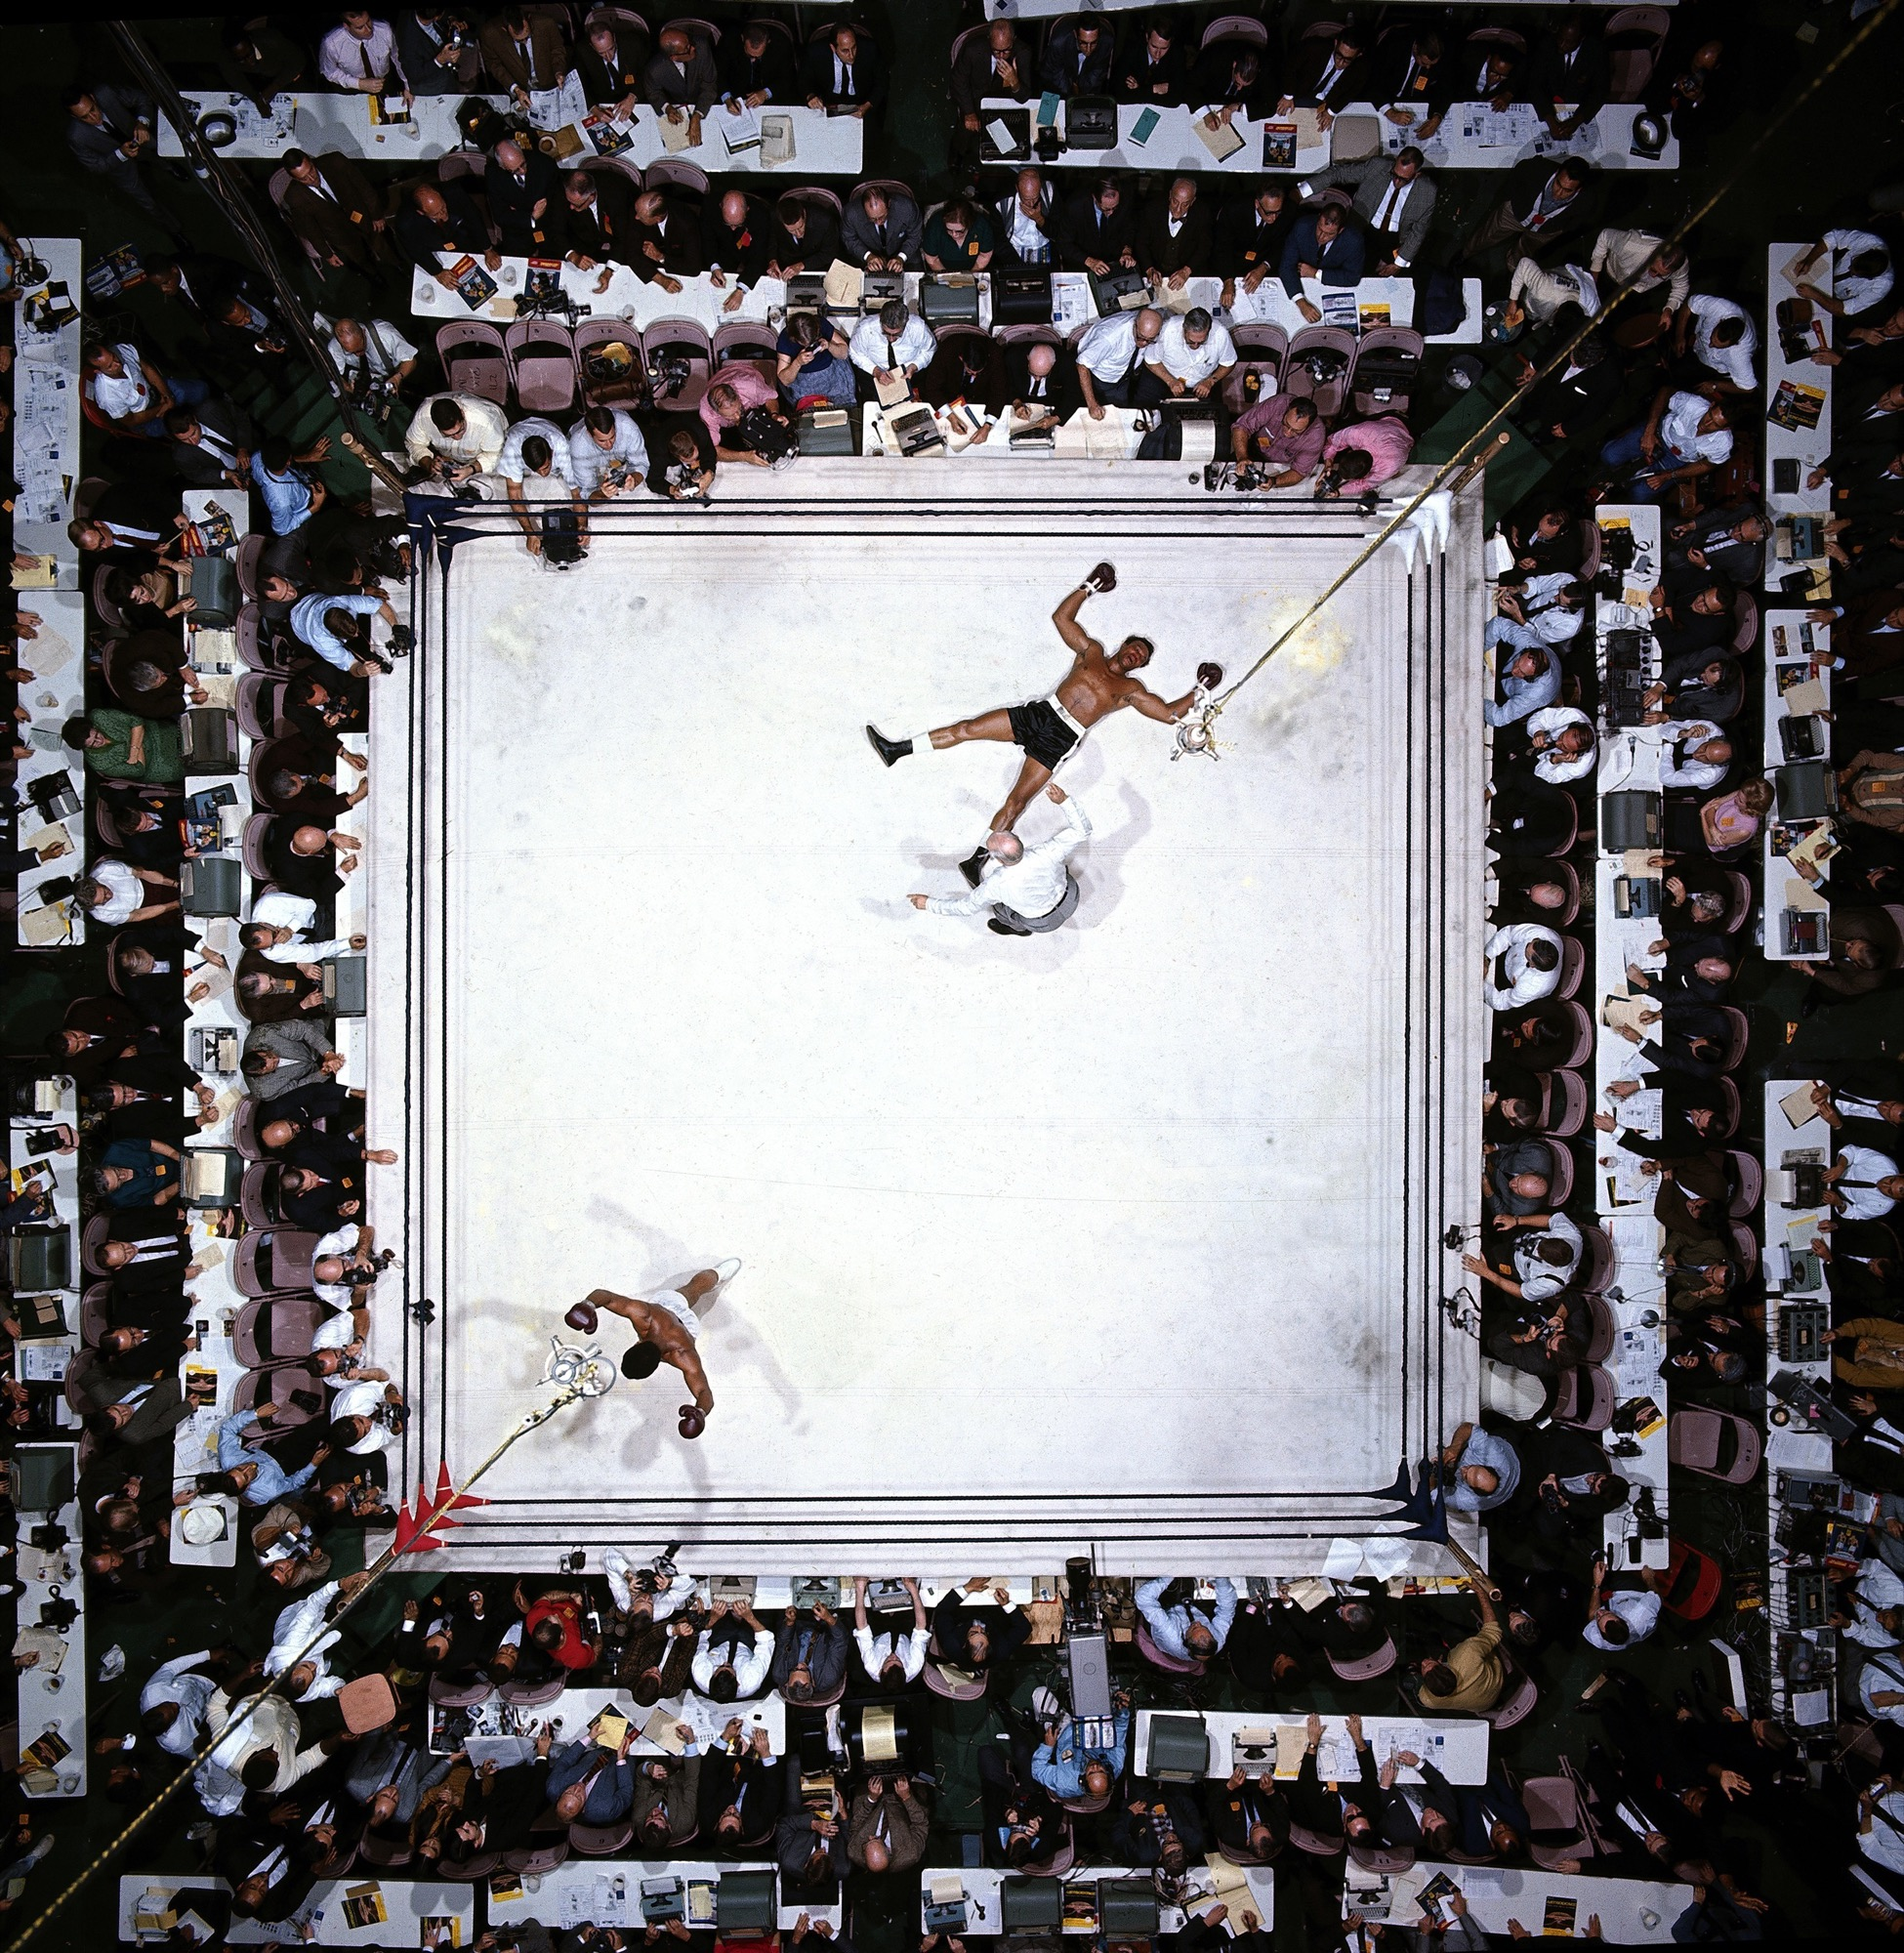 Neil Leifer/Sports Illustrated